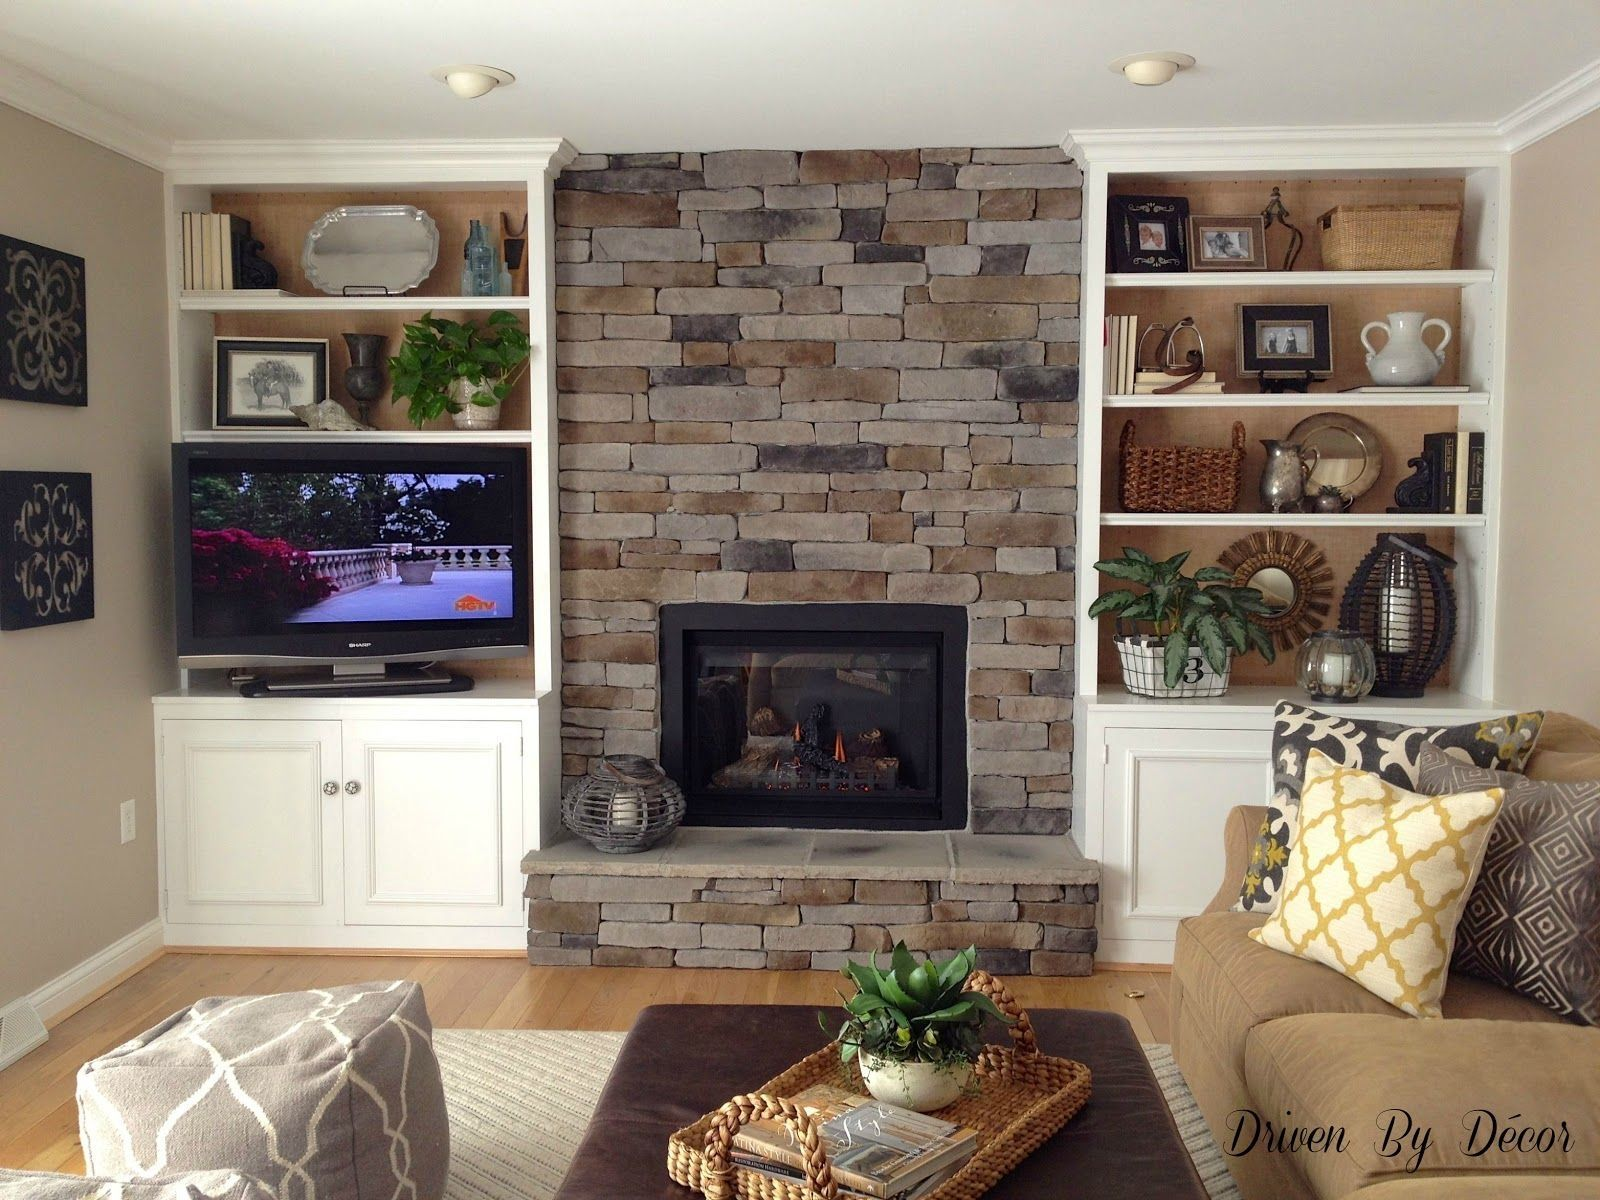 Fireplace With Bookshelves On Each Side Ideas Best 25 Shelves Around Fireplace Ide Built In Around Fireplace Fireplace Built Ins Bookshelves Around Fireplace